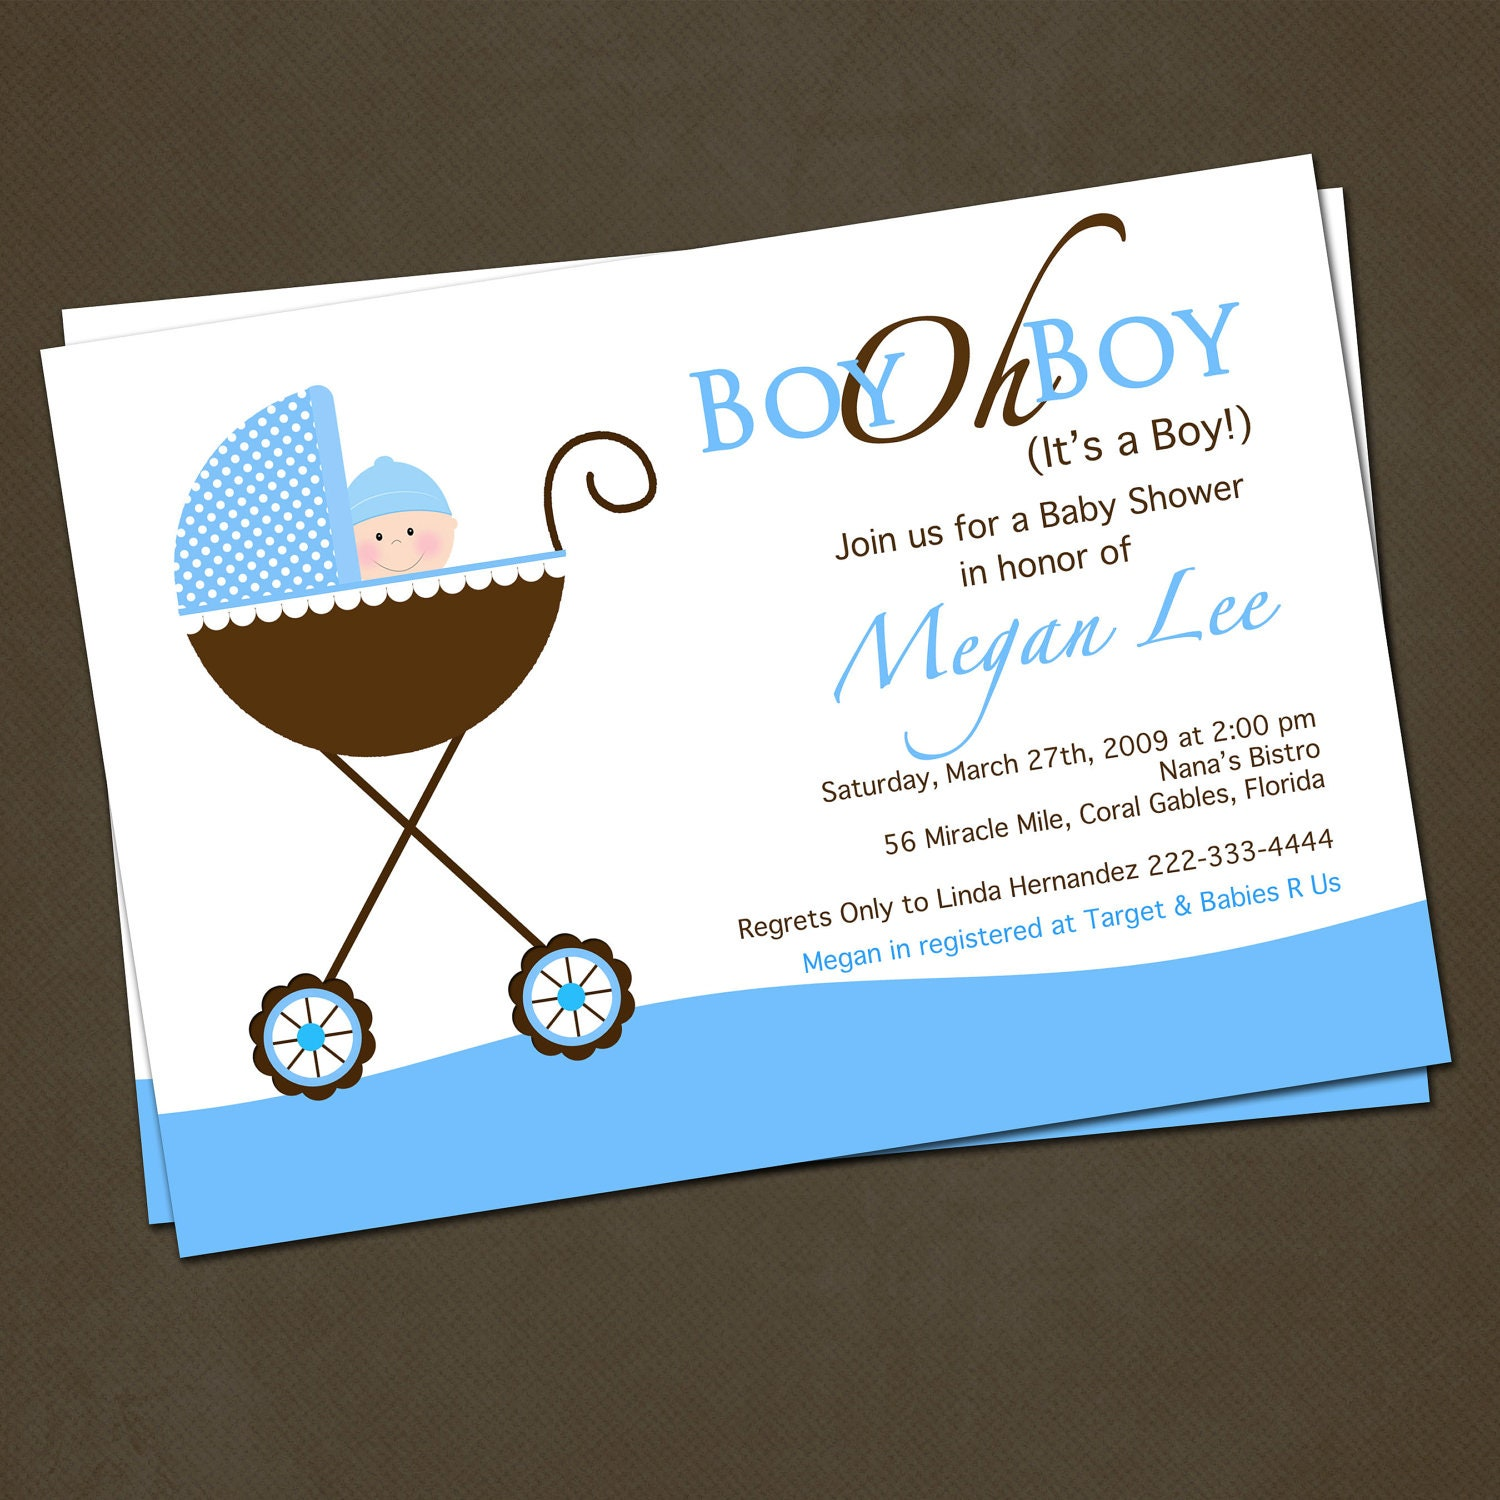 Baby Shower Invitations Wording For Boys: Stroller Baby Shower Invitations For Boy By PinkSkyPrintables